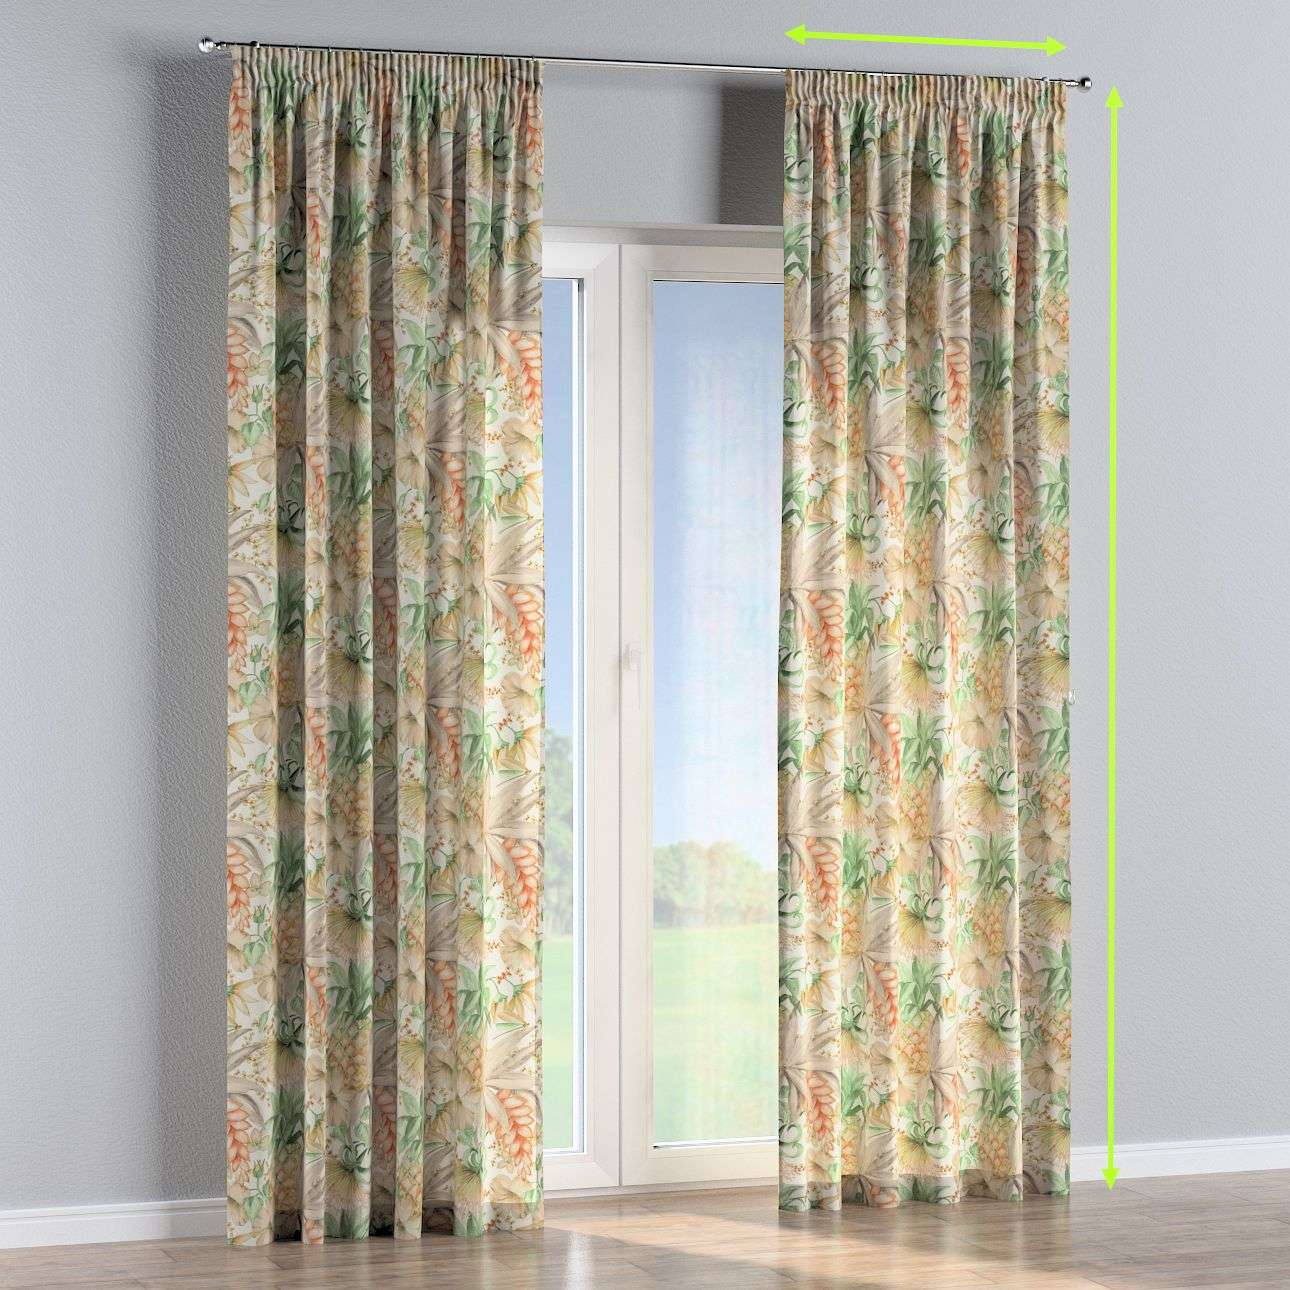 Pencil pleat curtains in collection Urban Jungle, fabric: 141-61